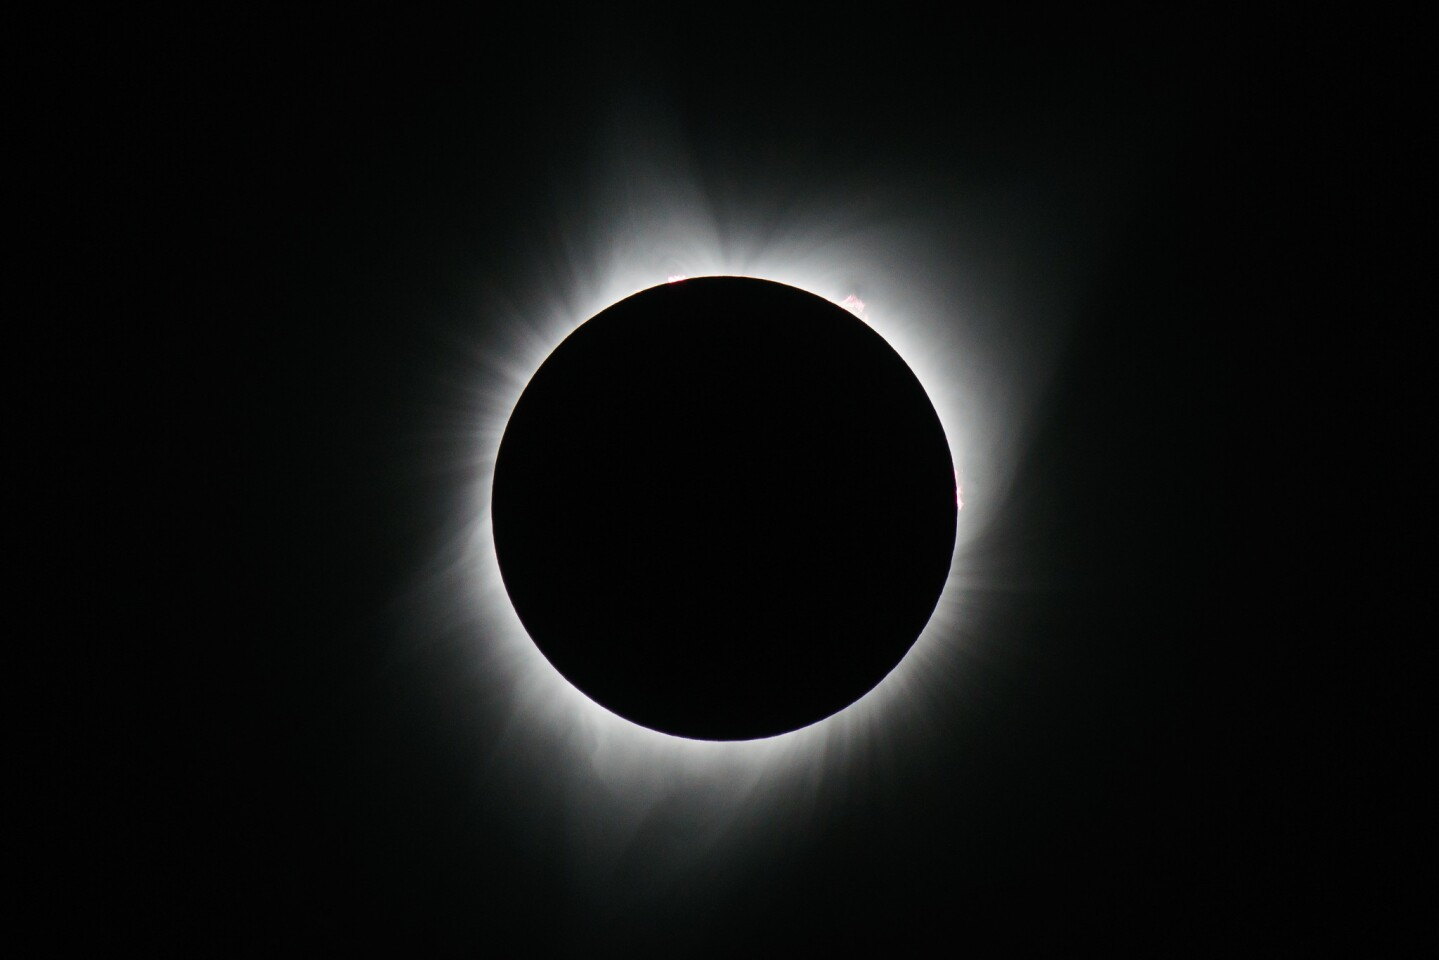 Views of the solar eclipse from across the U.S.